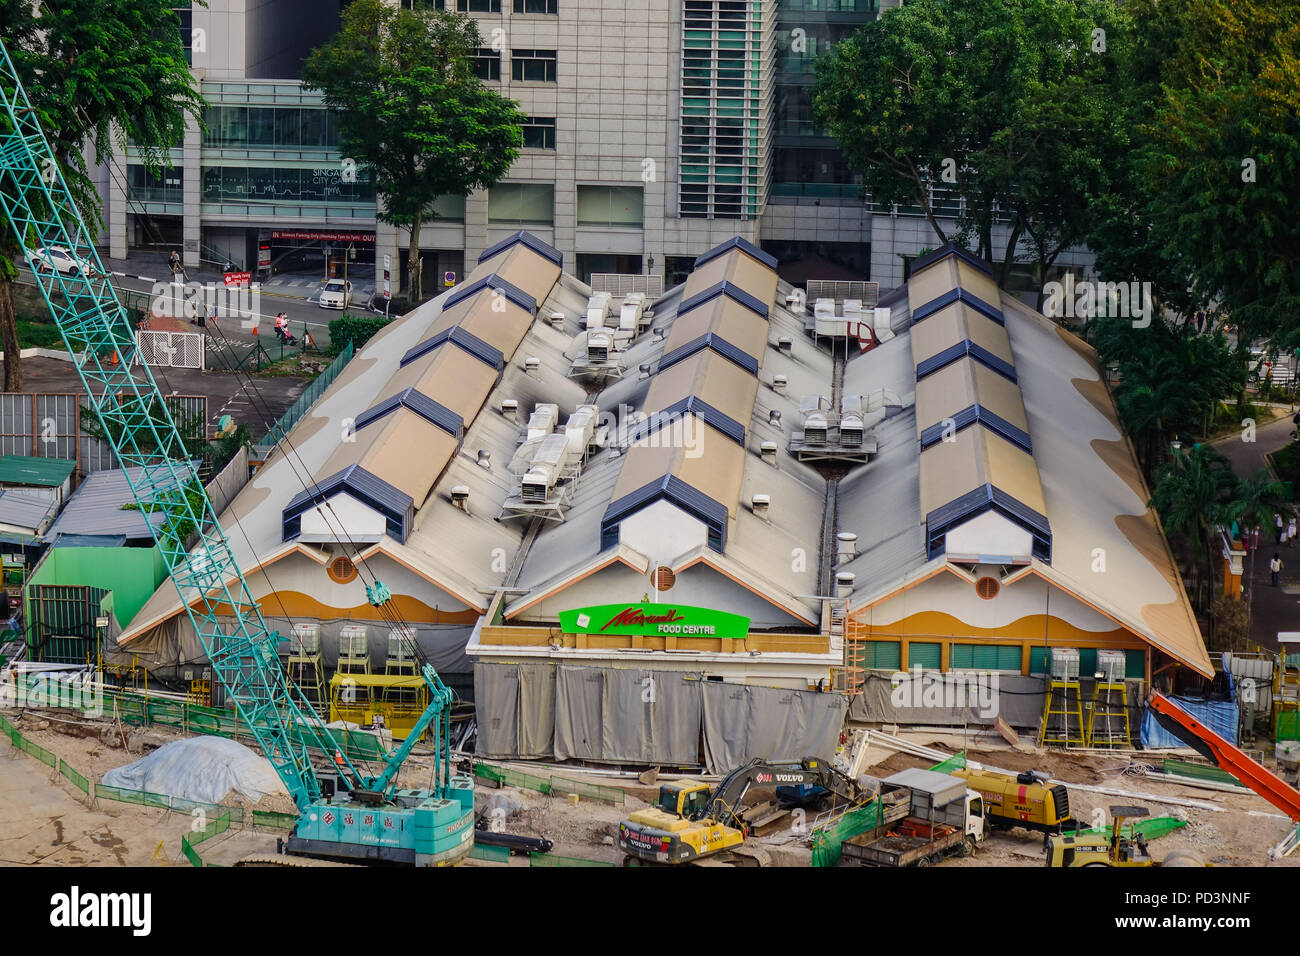 Singapore - Feb 9, 2018. Aerial view of warehouses at construction site in Singapore. Singapore is a sovereign city-state and island country in Southe - Stock Image